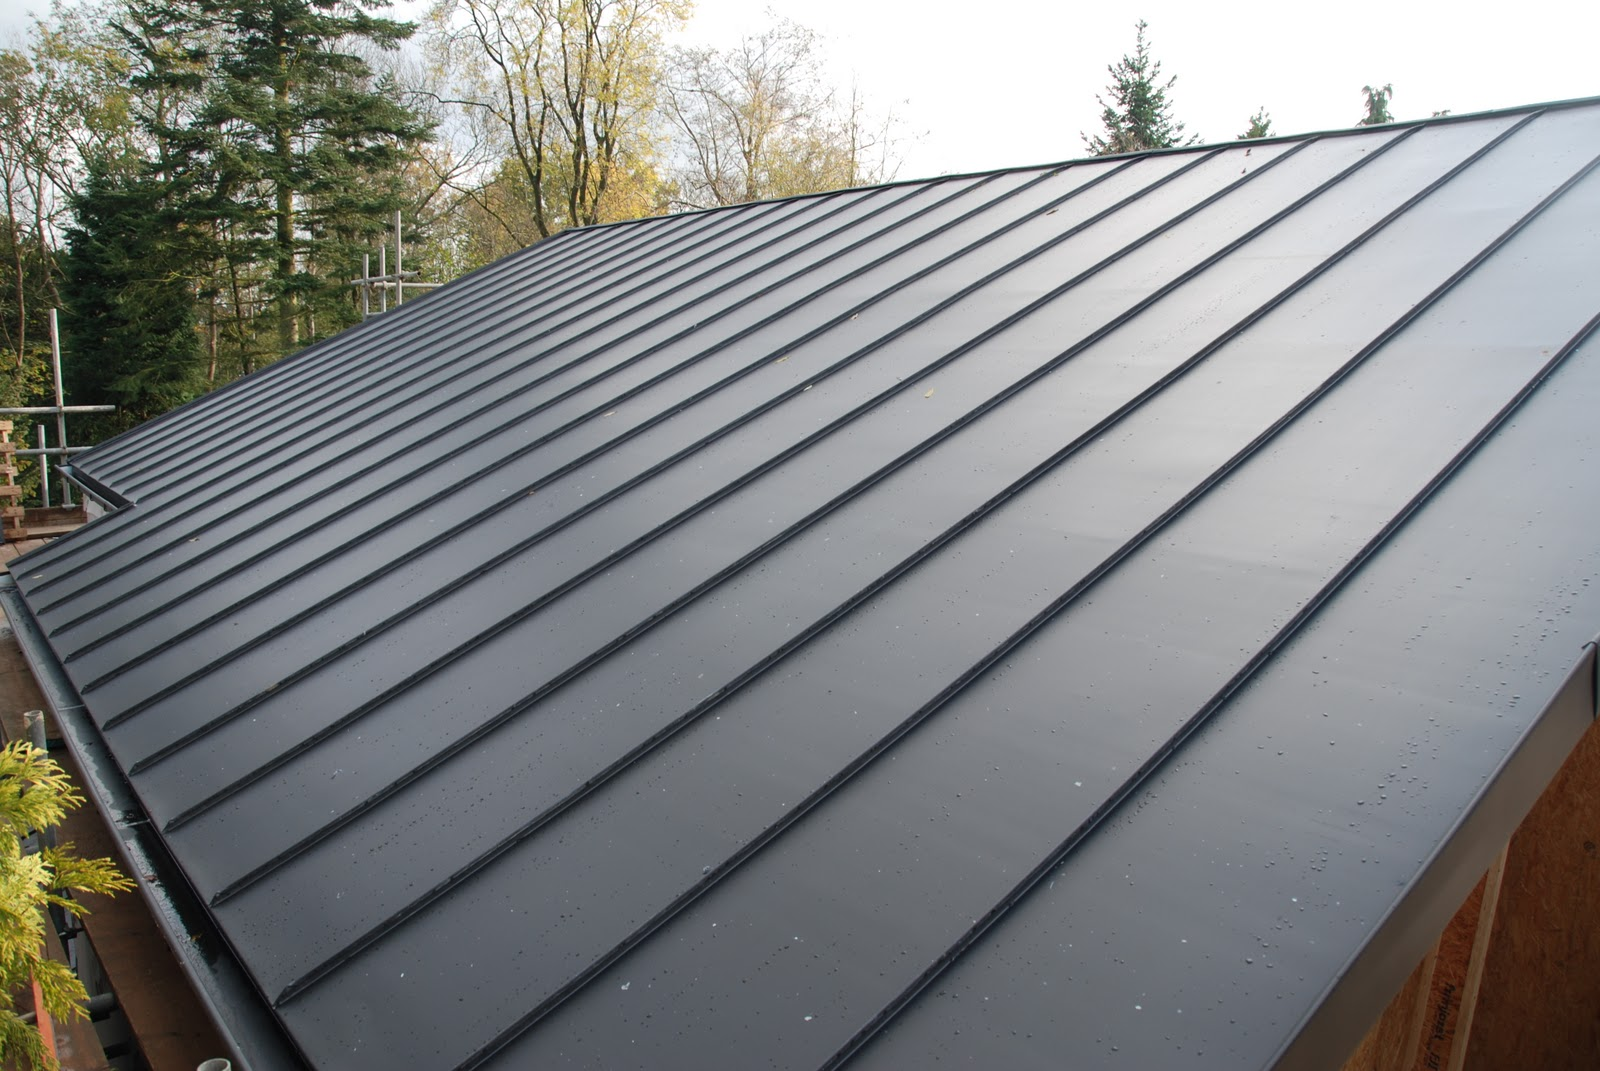 Modern House Build In Surrey: Day 143 - Zinc roof and getting ready ...